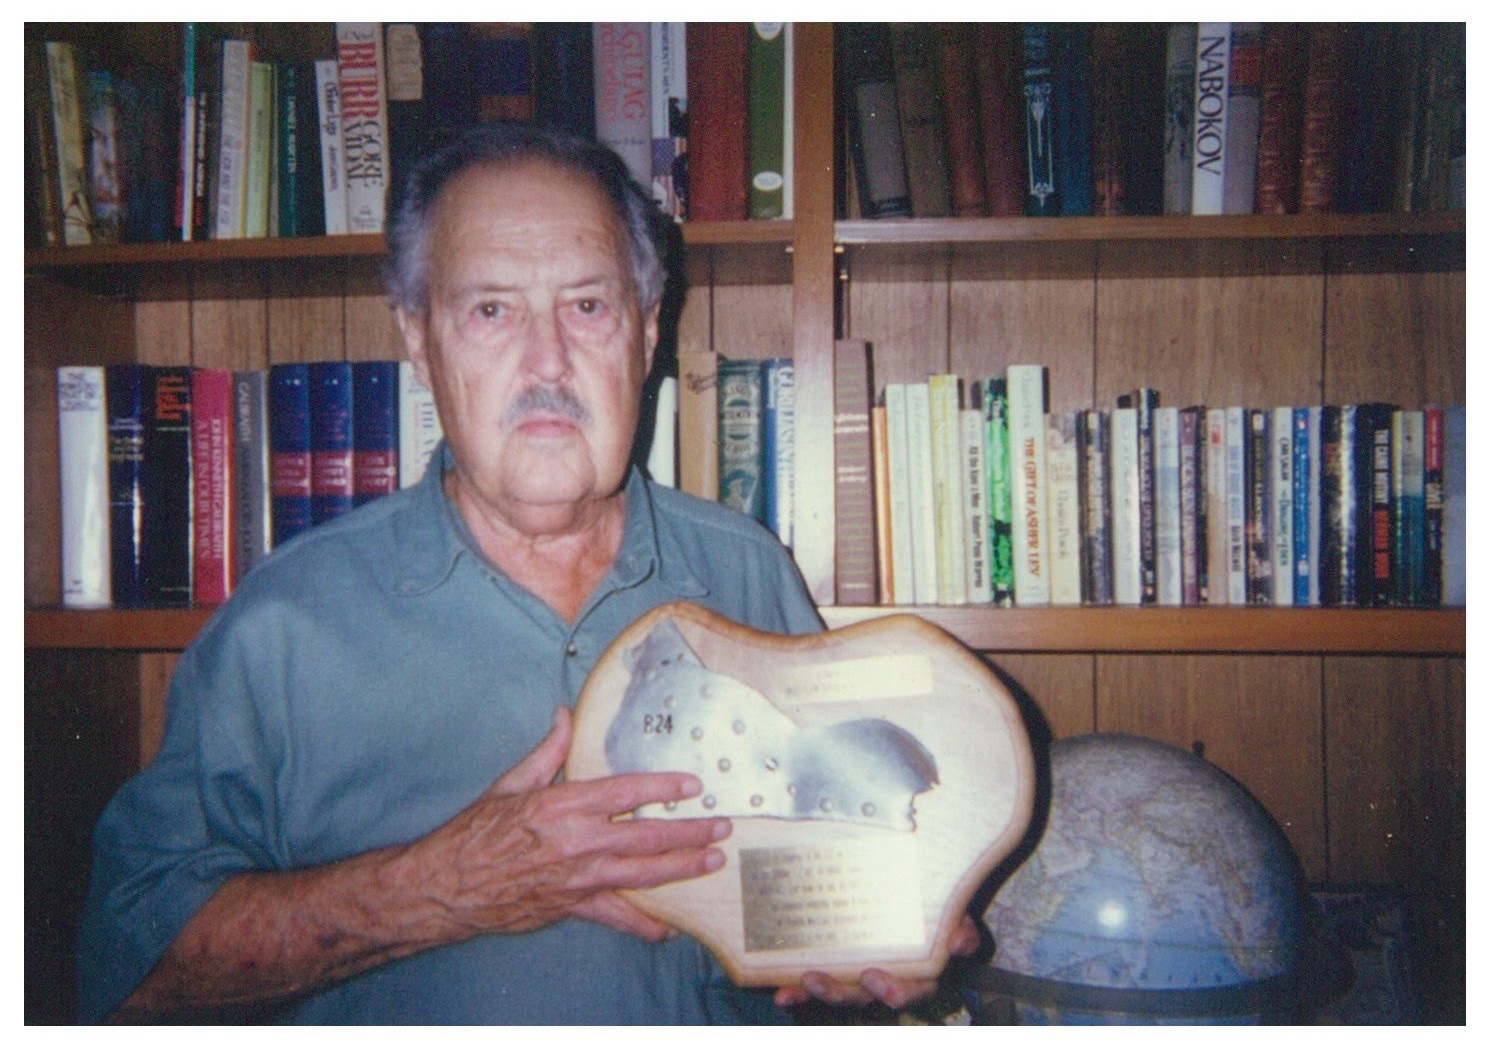 Dr. Cartwright, former pilot-in-command of the  Lonesome Lady , holds the plaque fashioned from a piece of the wreckage from the bomber  Lonesome Lady , sent to him by Mr. Keiichi Muranaka. (Courtesy of Dr. Cartwright.) Professor Cartwright was profoundly moved by receiving this fragment of the plane that he commanded as a 21-year-old 2nd Lt. in the US Army Air Force.